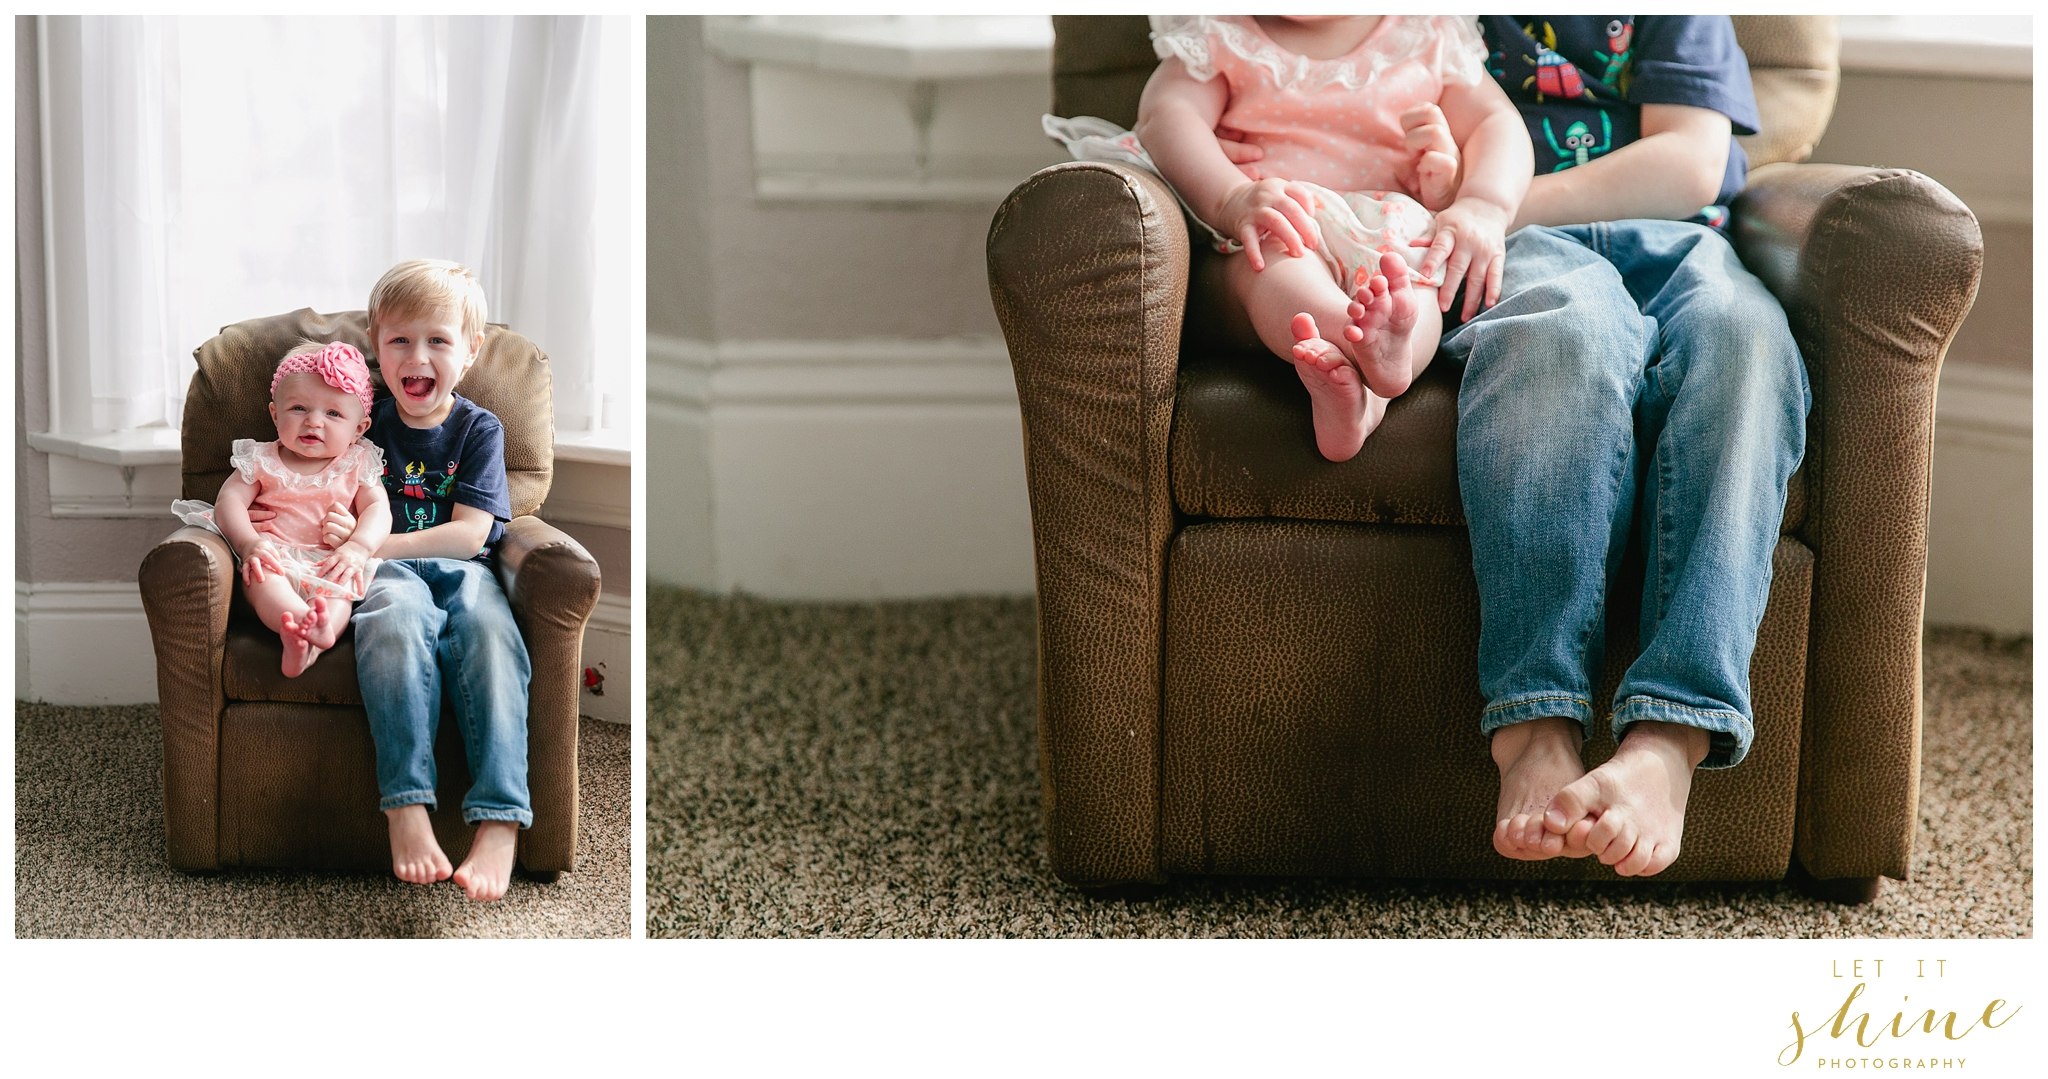 Lifestyle Family In Home Session Photographer Woodford-6852.jpg